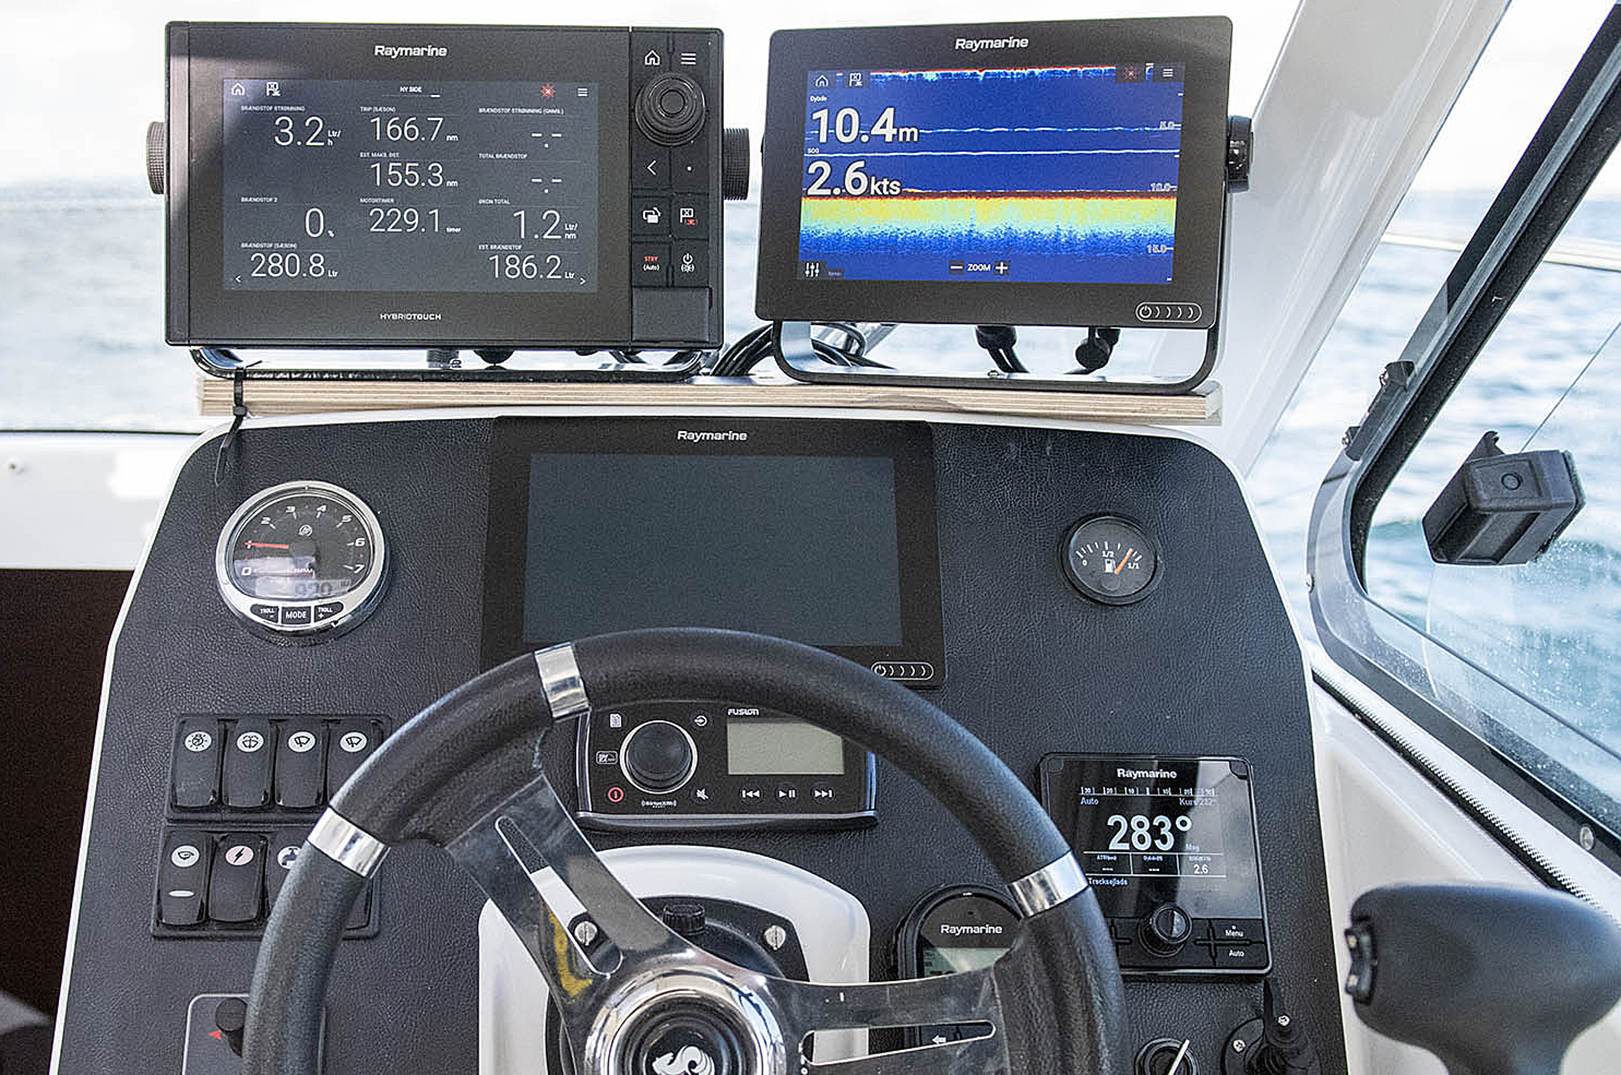 Evolution-150raymarine-i-intrumentpanel